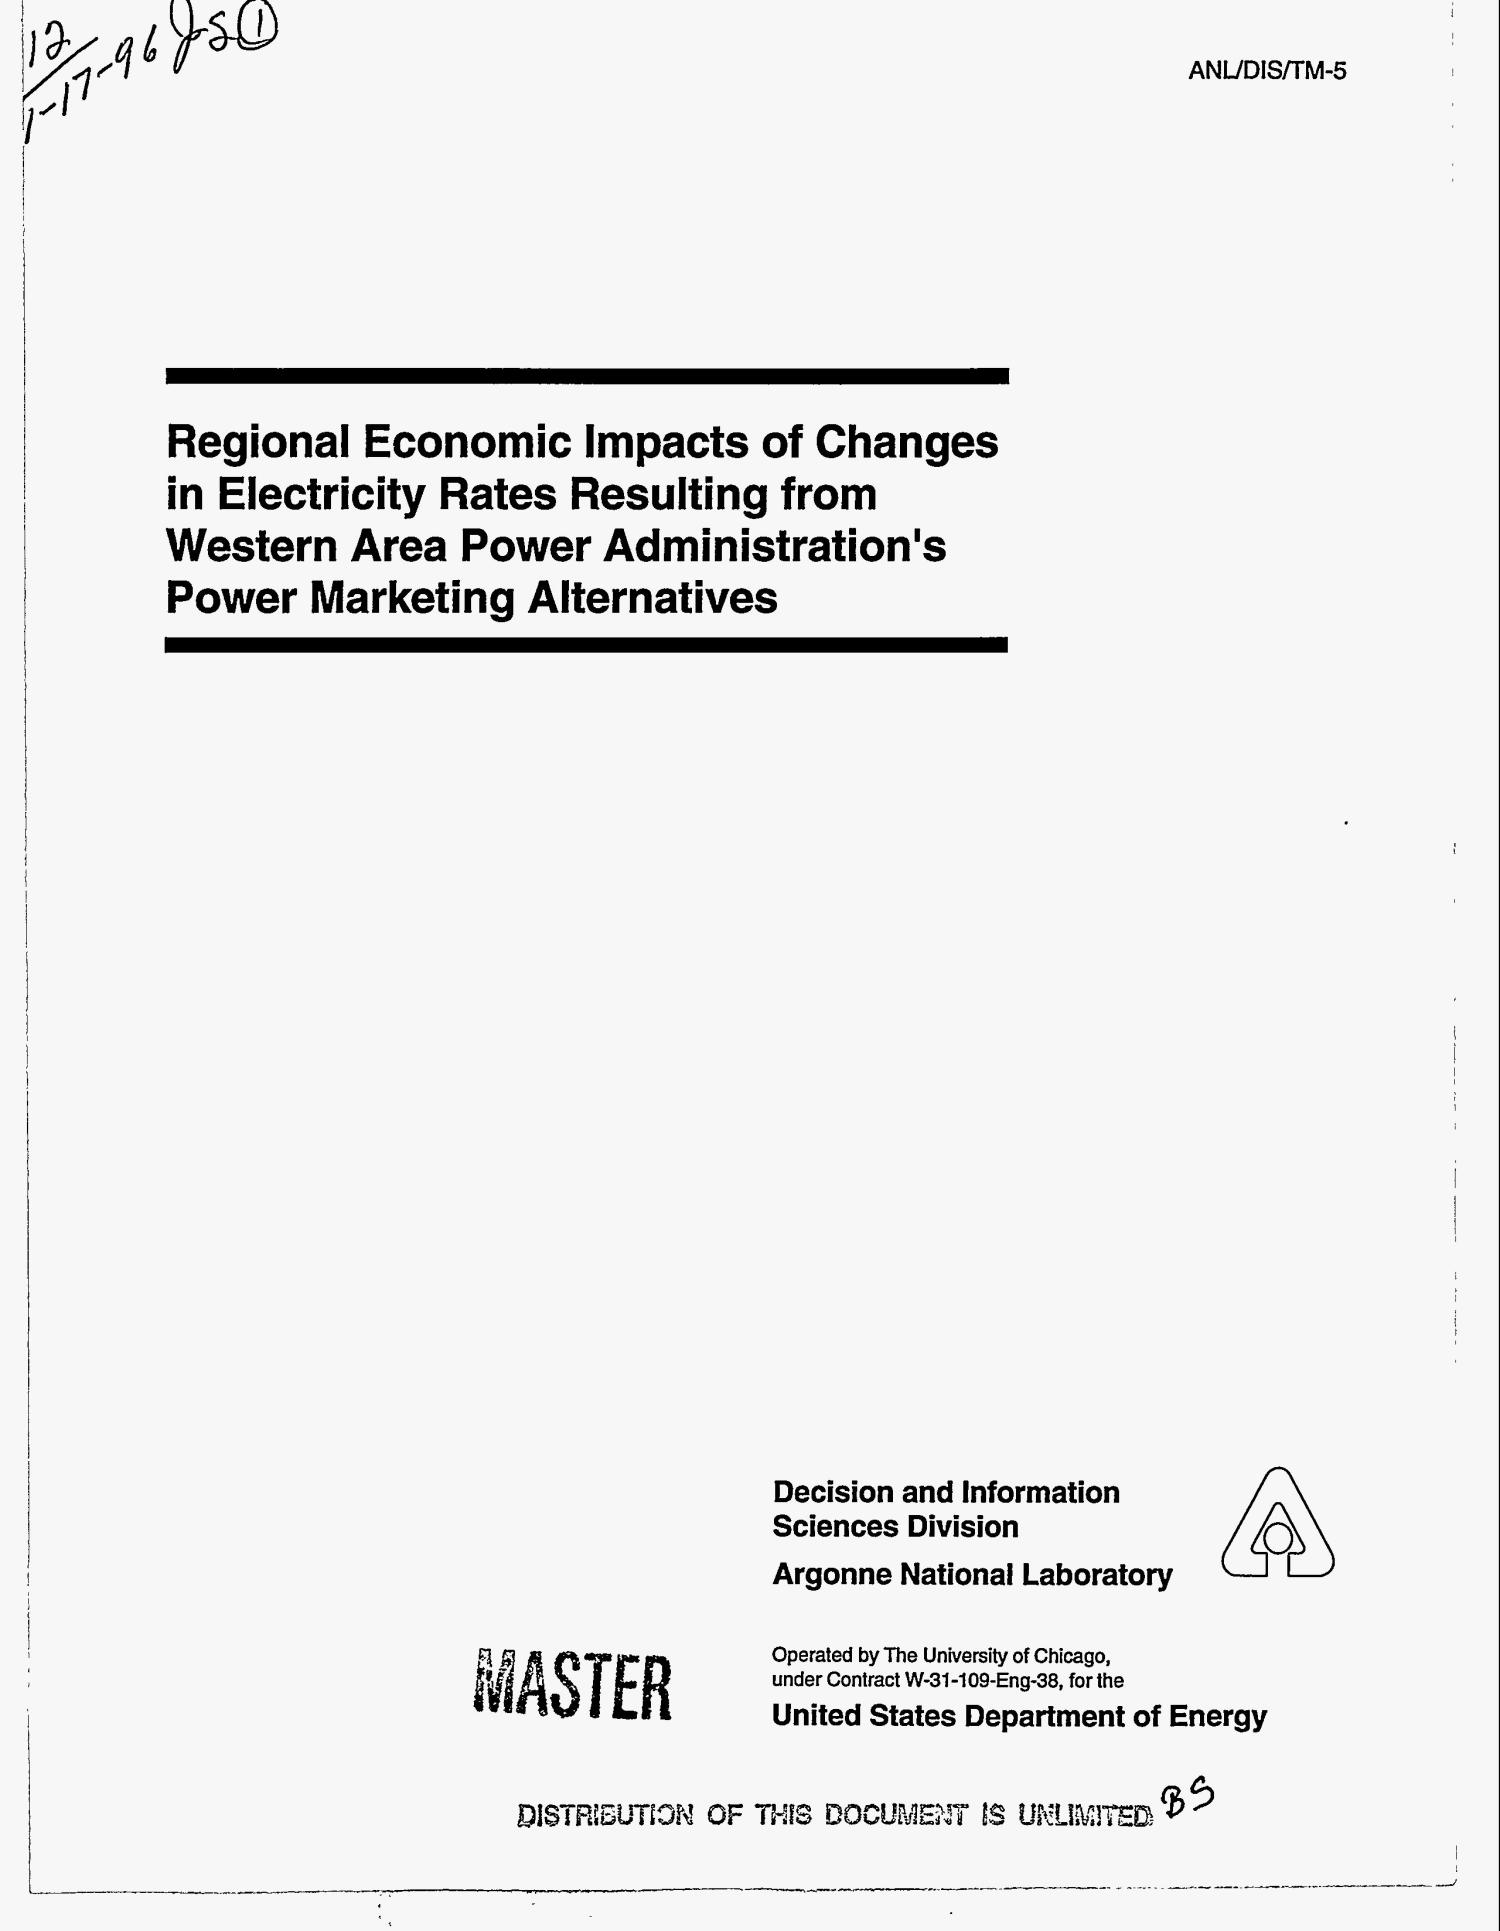 Regional economic impacts of changes in electricity rates resulting from Western Area Power Administration`s power marketing alternatives                                                                                                      [Sequence #]: 1 of 98